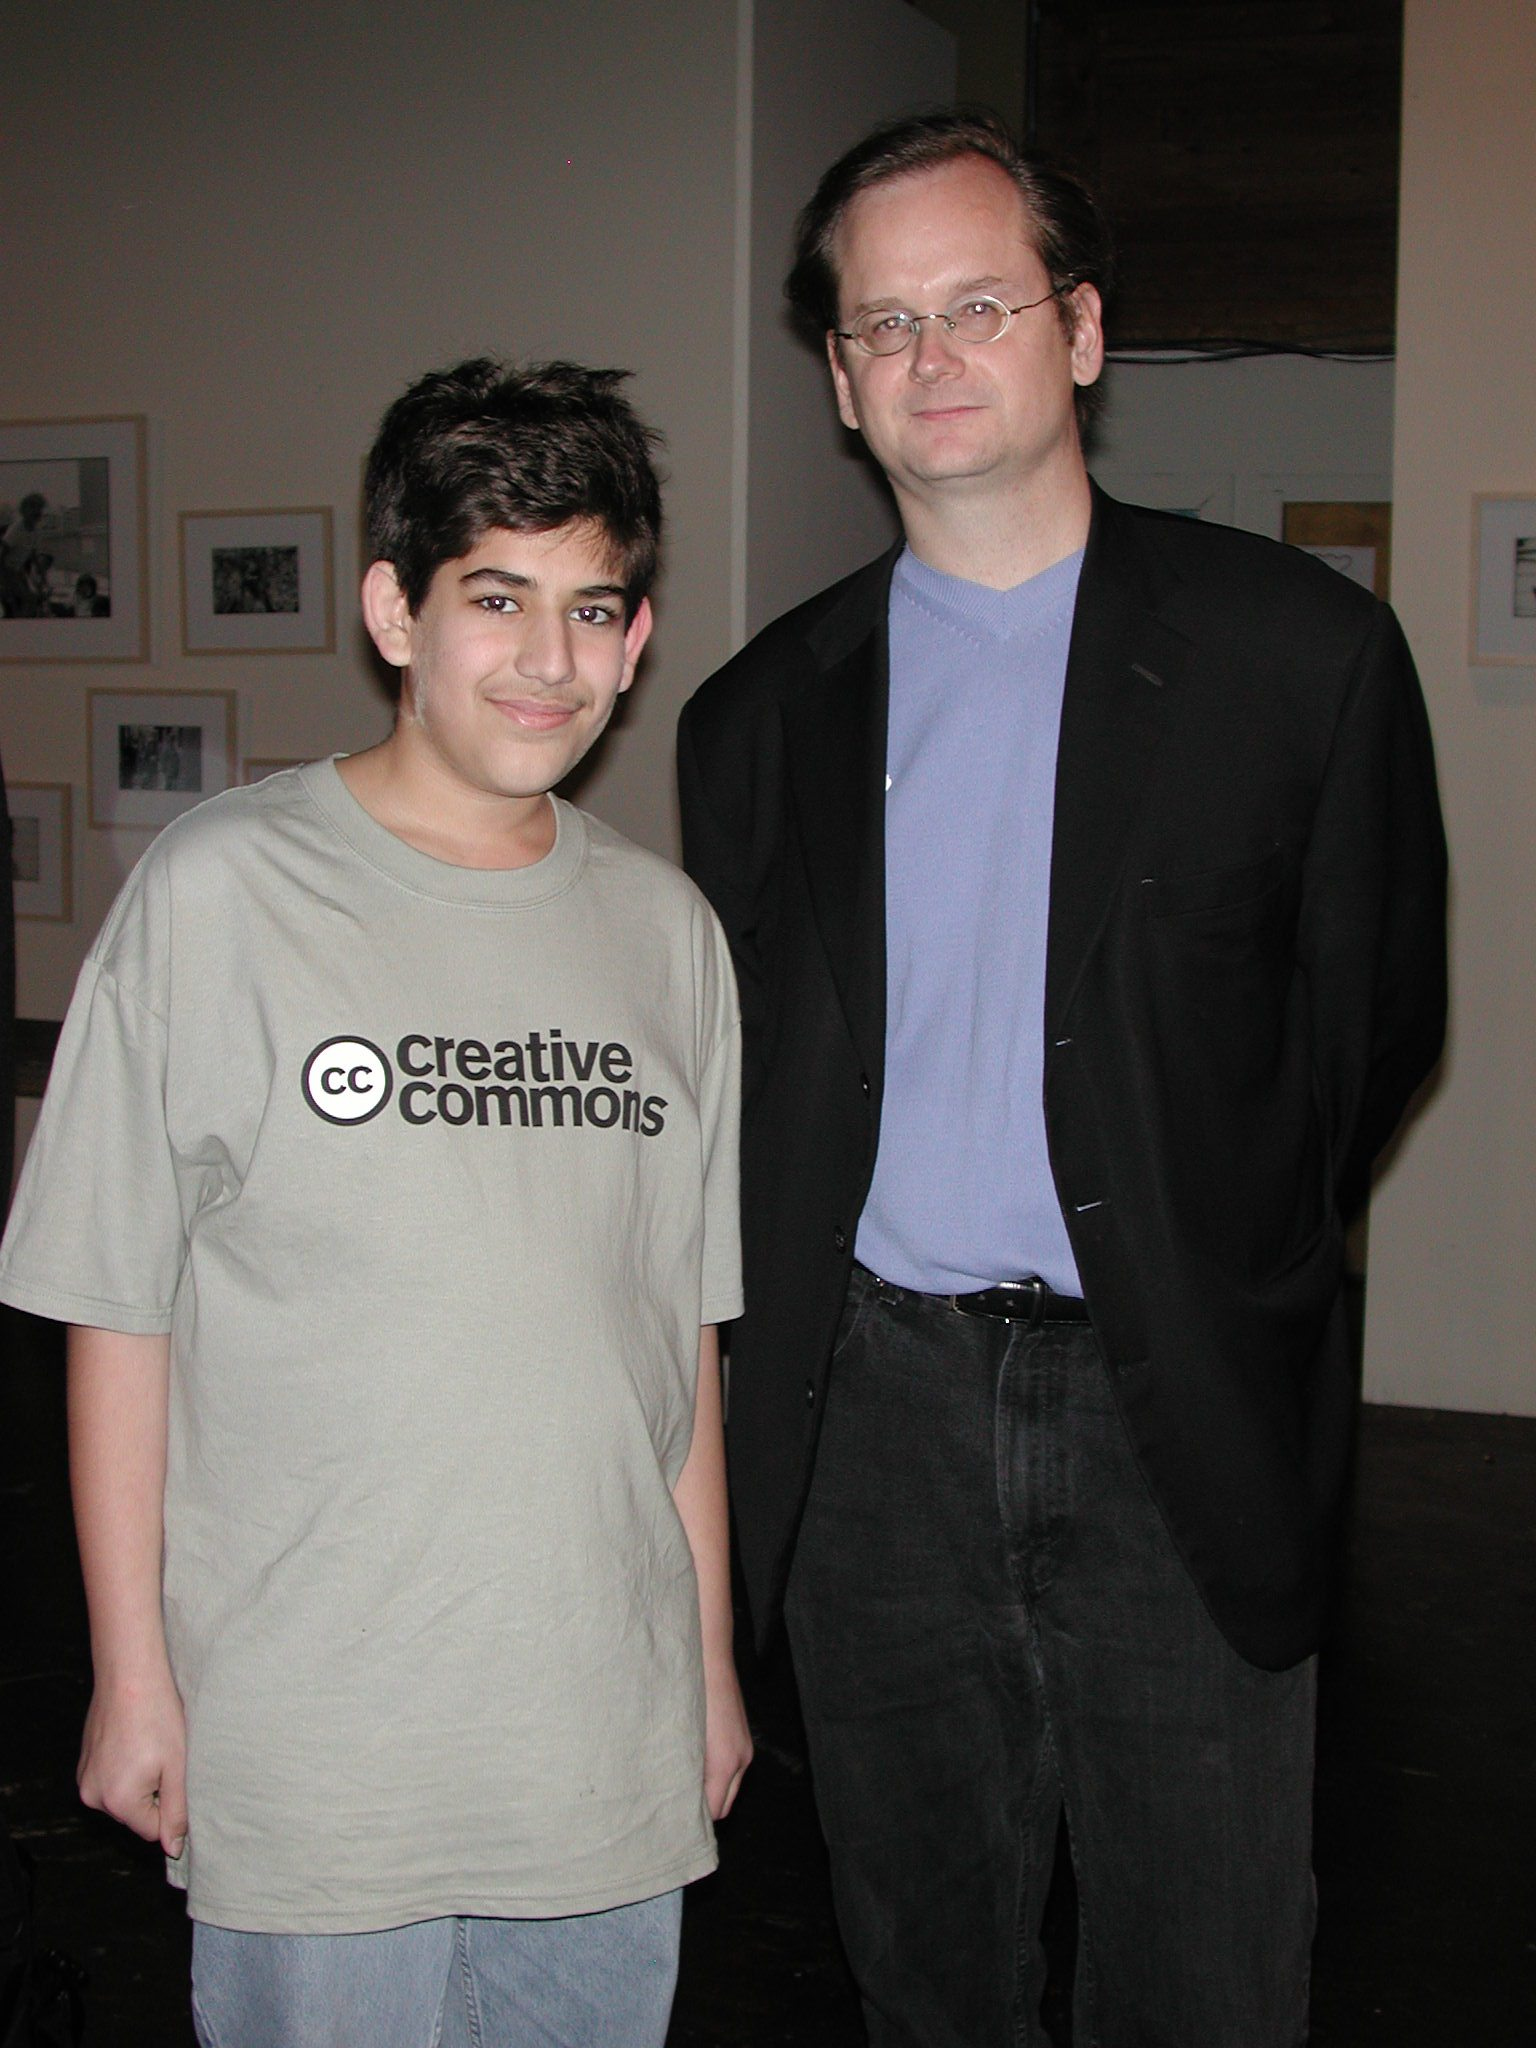 https://upload.wikimedia.org/wikipedia/commons/0/0b/Aaron_Swartz_and_Lawrence_Lessig.jpg